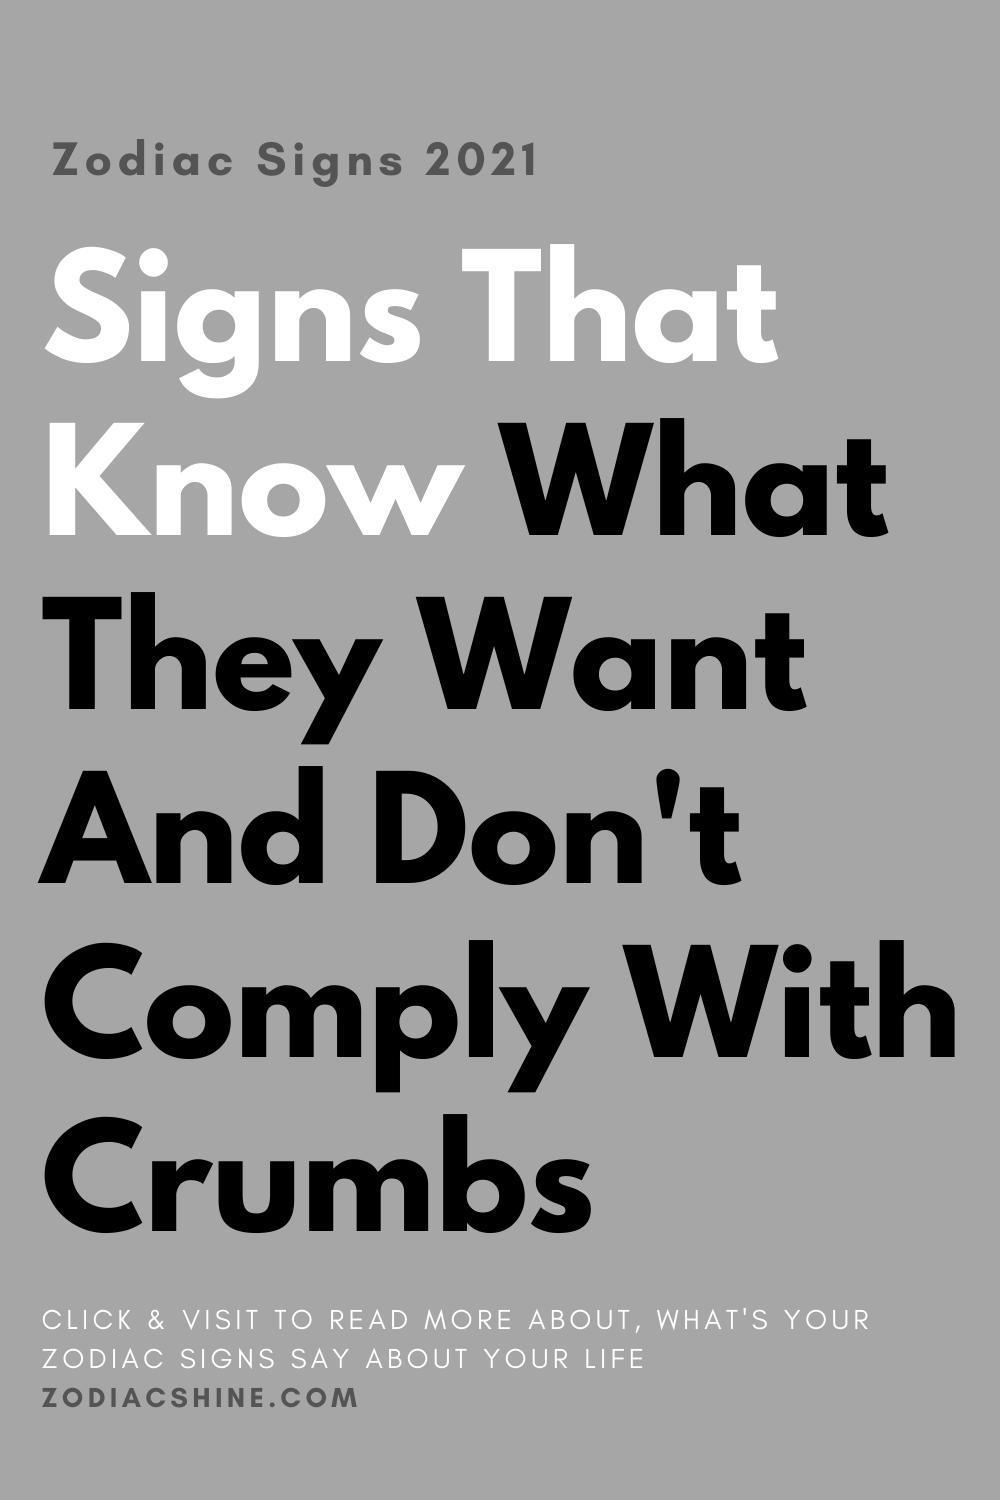 Signs That Know What They Want And Don't Comply With Crumbs